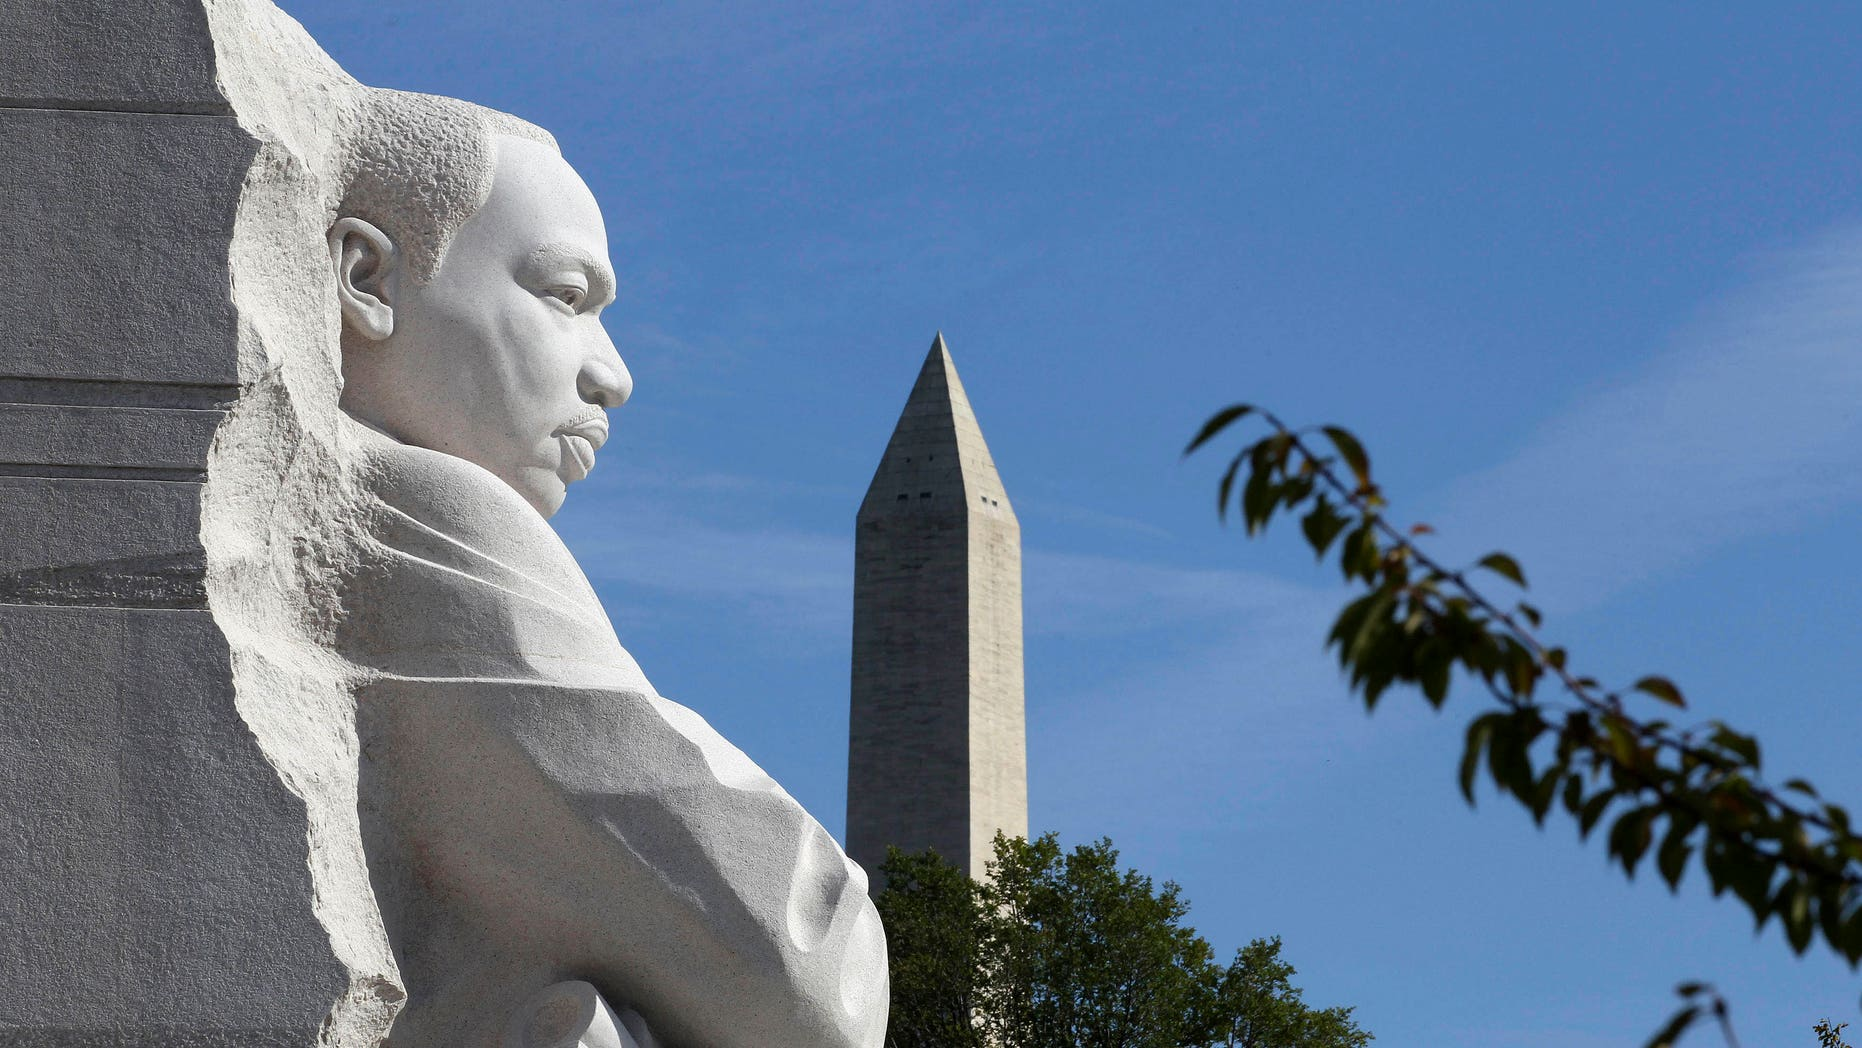 The Martin Luther King, Jr. Memorial and the Washington Monument are seen in Washington, DC